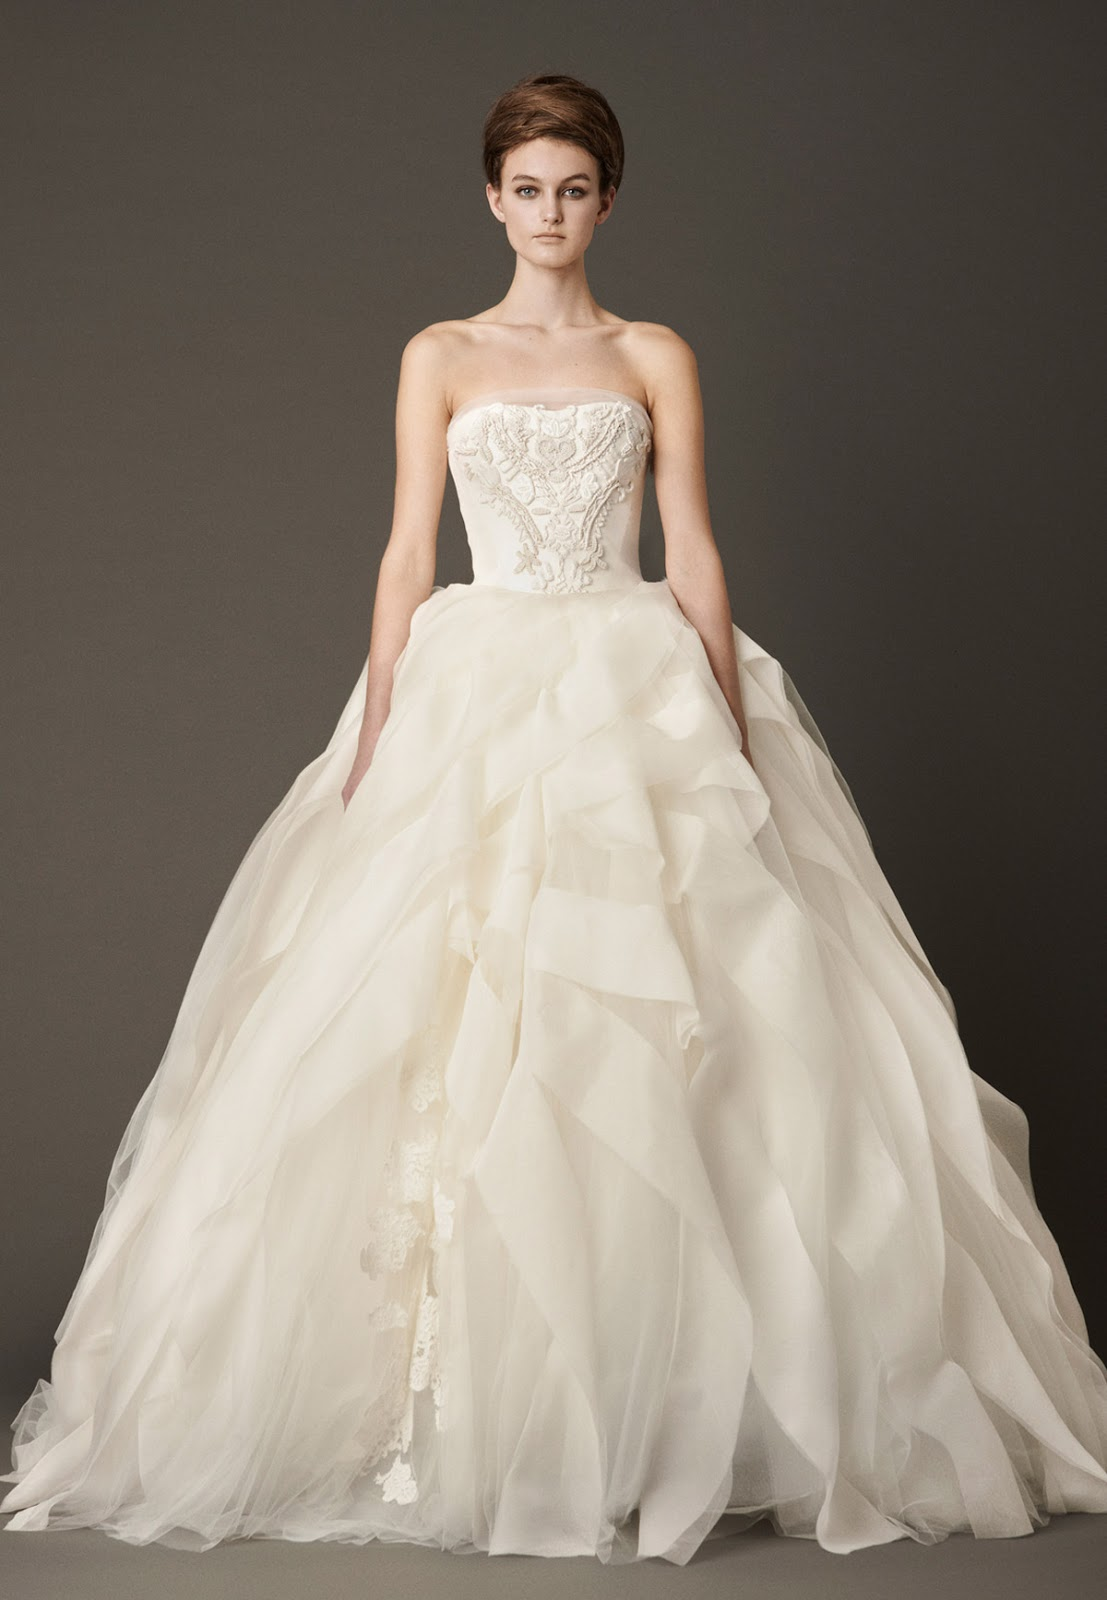 Dressybridal vera wang fall 2013 ruffled wedding gowns for Where to buy vera wang wedding dresses